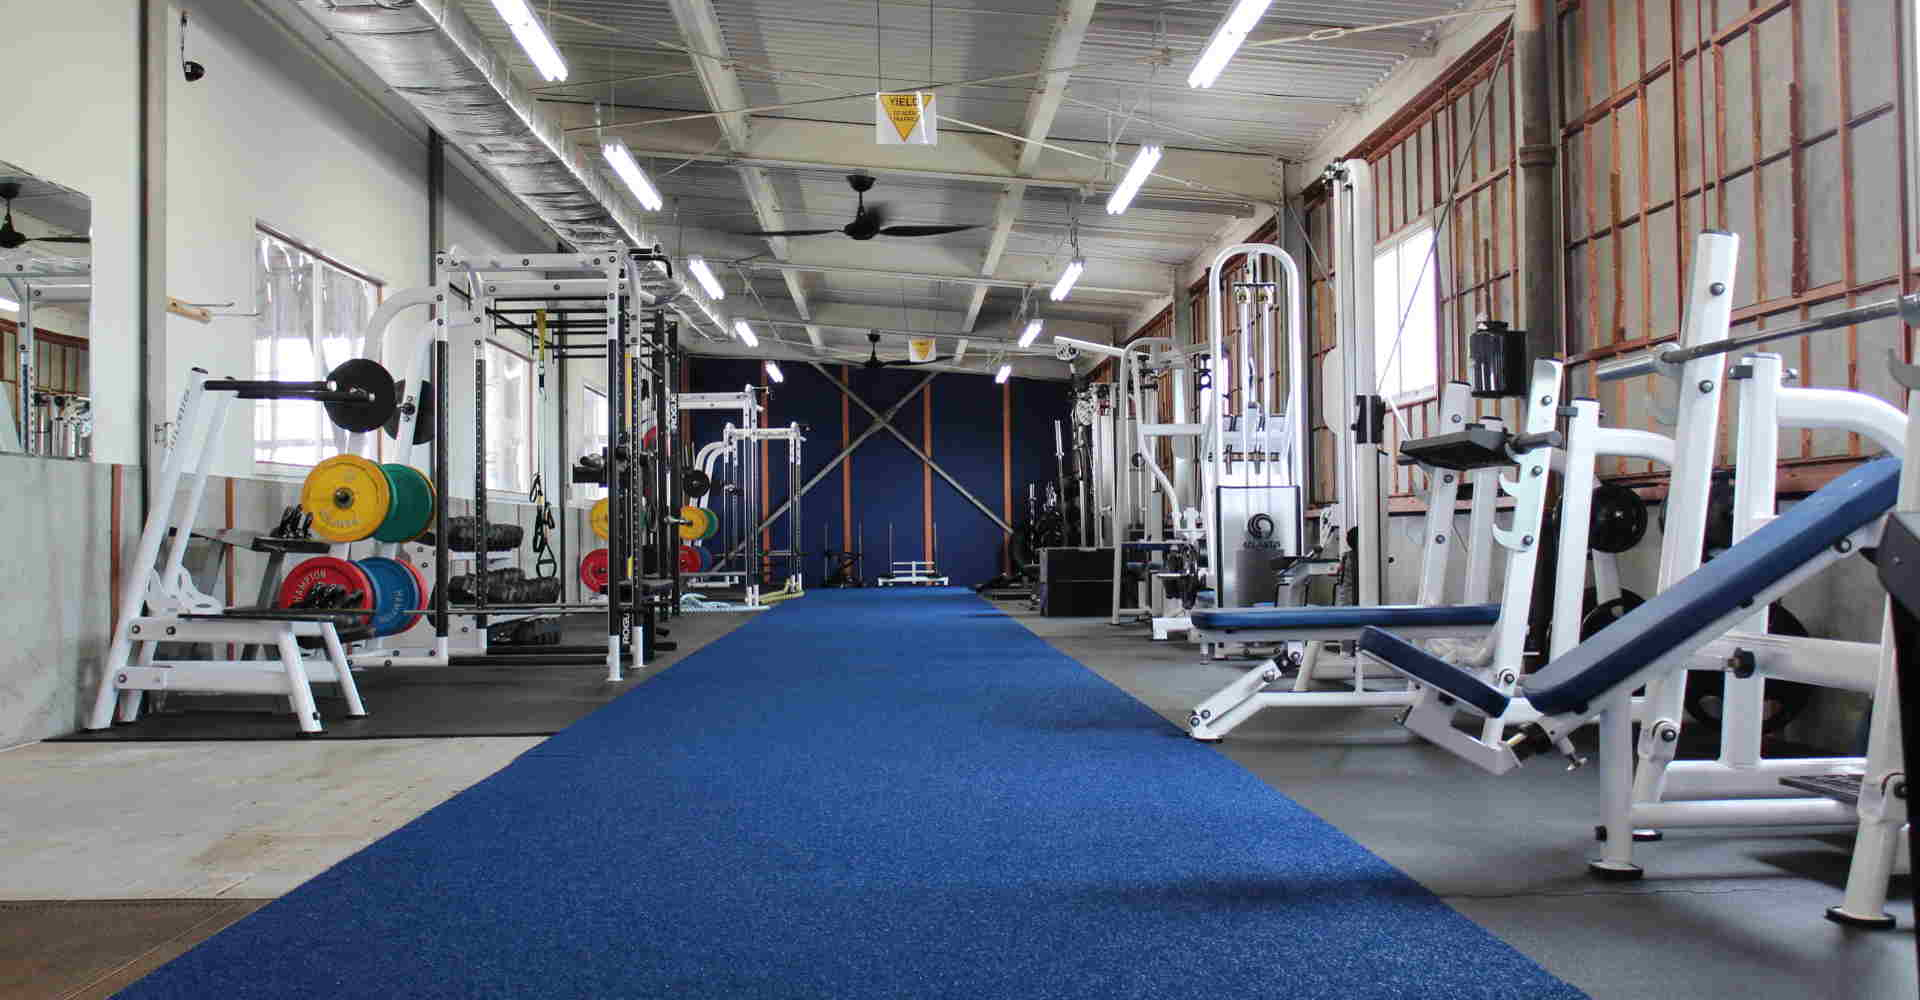 UpLift Training Gym, Louisville, KY